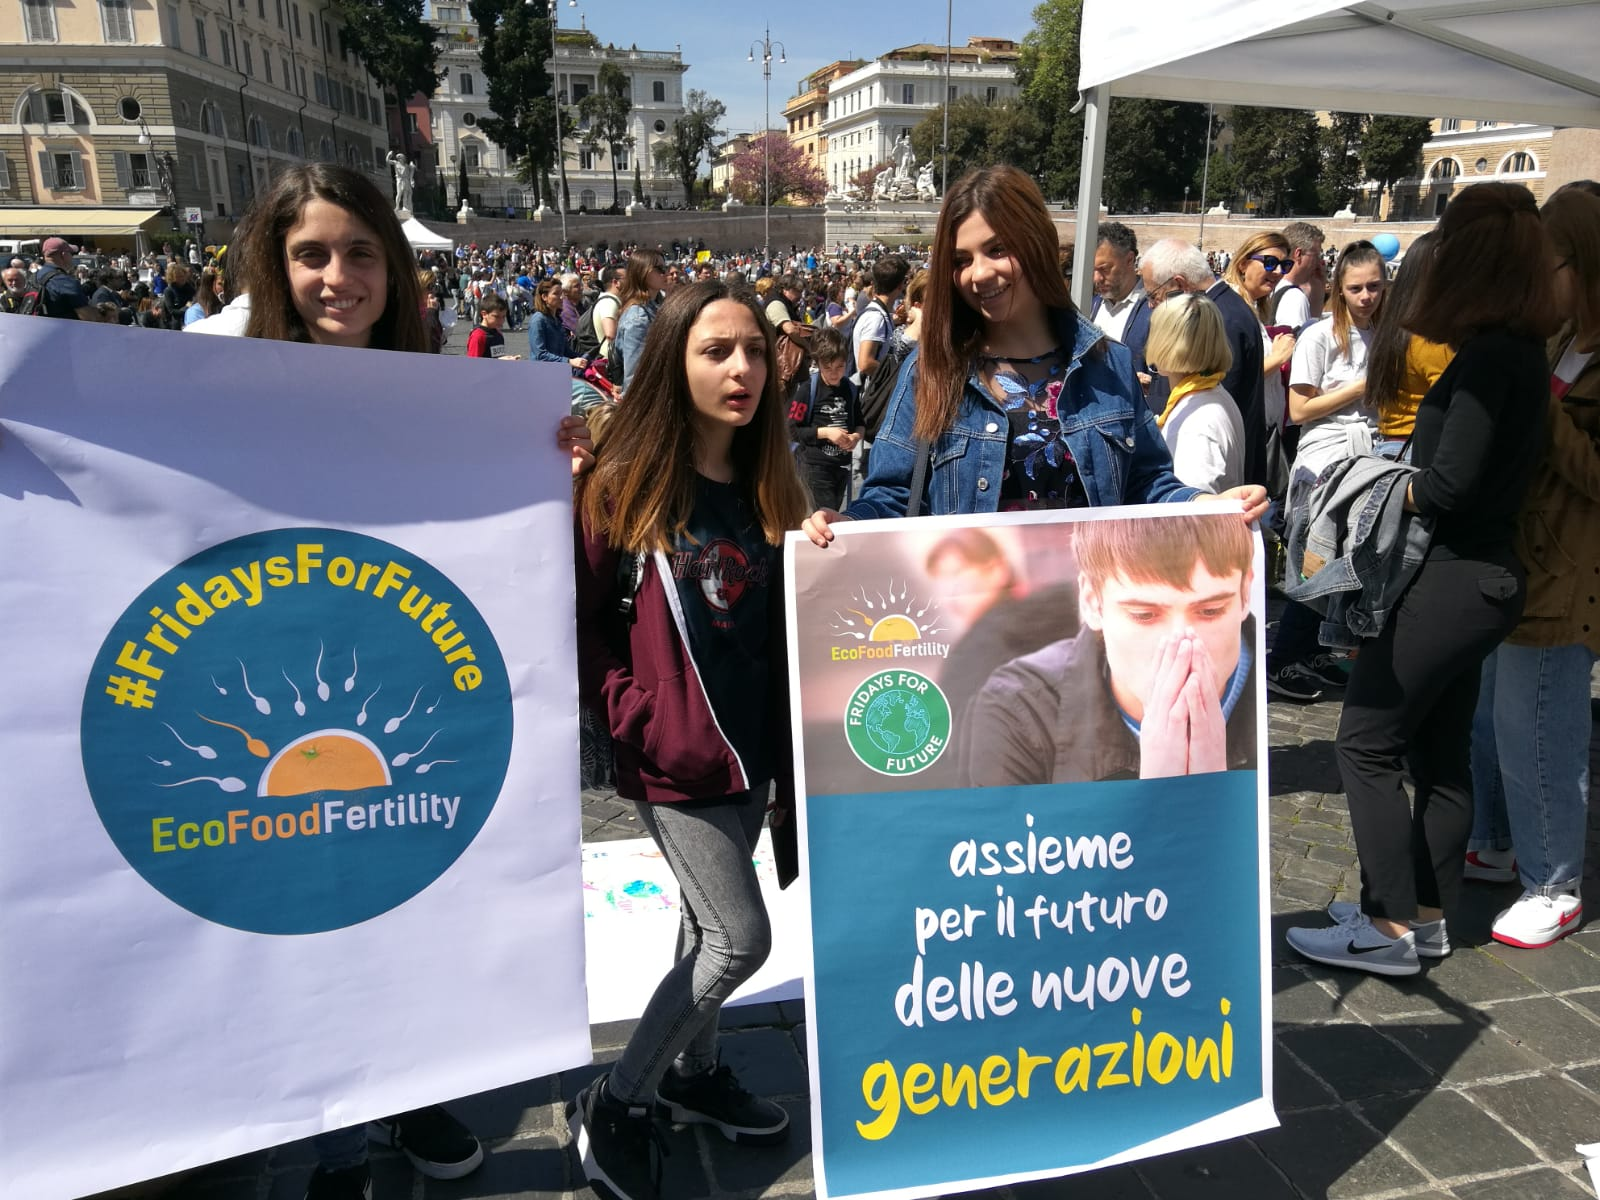 fridaysforfuture-Ecofoodfertility-16-04-19-9